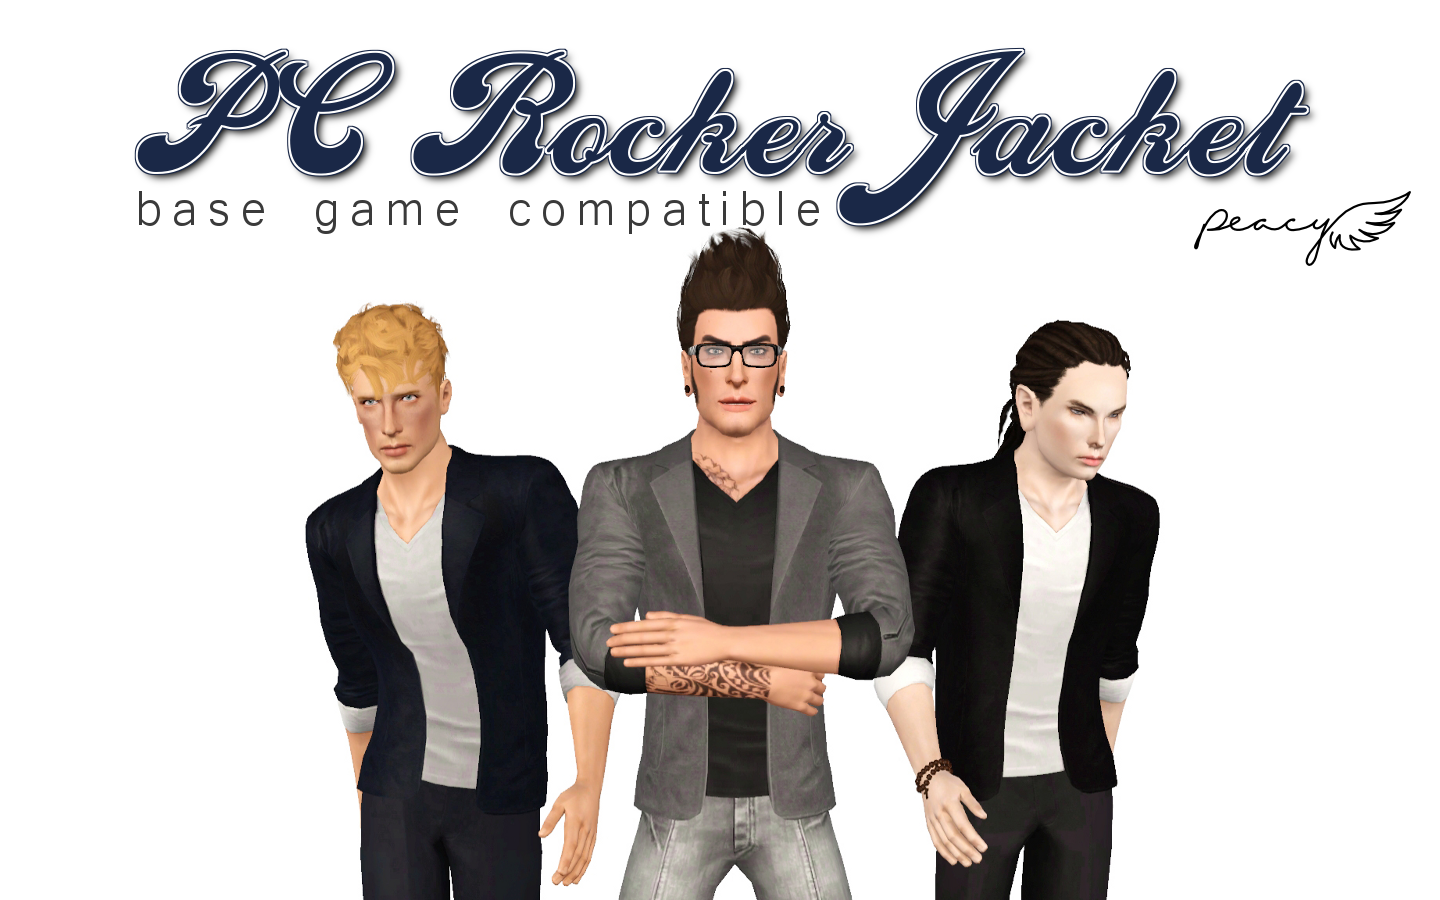 Base Game Compatible Rocker Jacket by Peacemaker ic